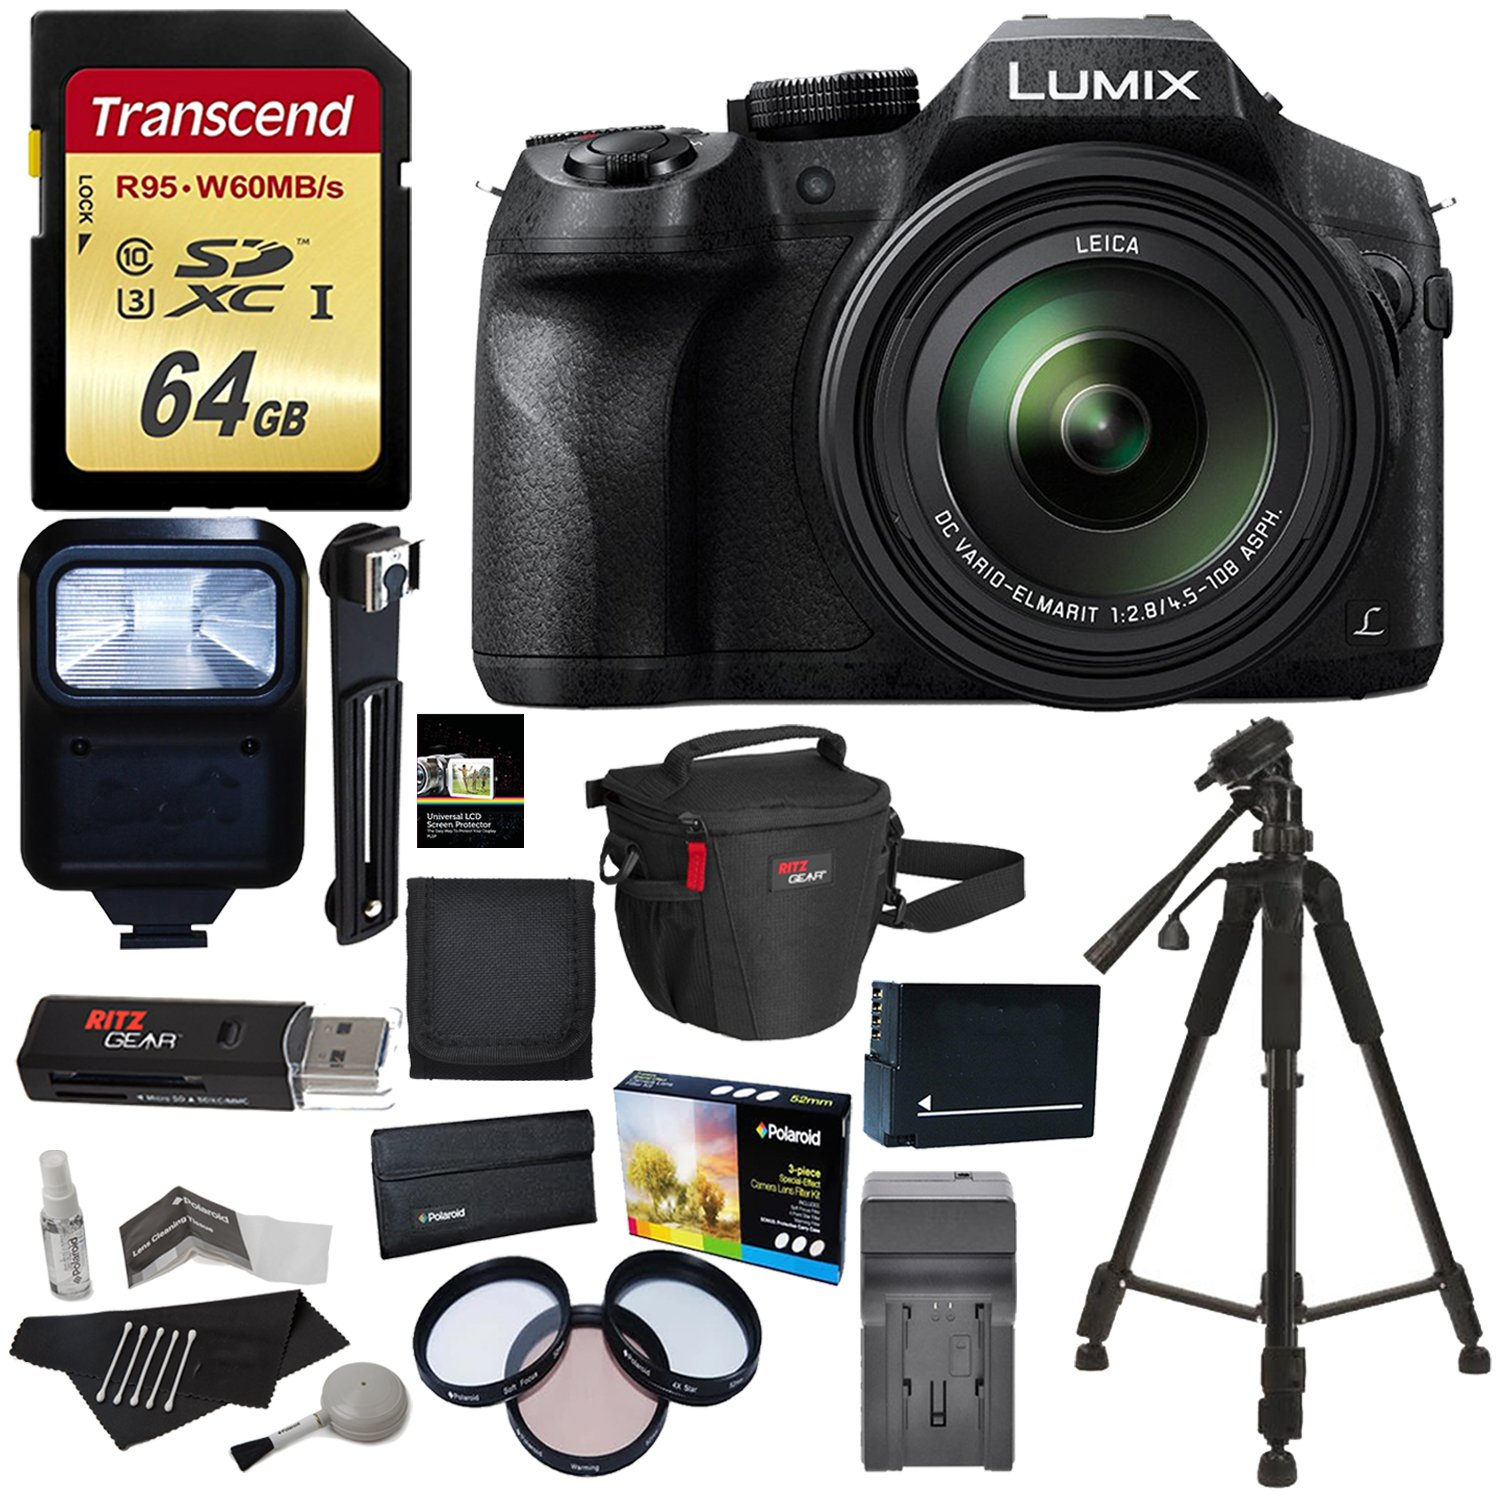 Panasonic LUMIX DMC FZ300 4K Point and Shoot Camera with Leica DC Lens 24X Zoom Black + Polaroid Accessory Kit + 64GB SD Card + 50'' Tripod + Ritz Gear Bag + Battery + Charger + Filter + Cleaning Kit by Panasonic